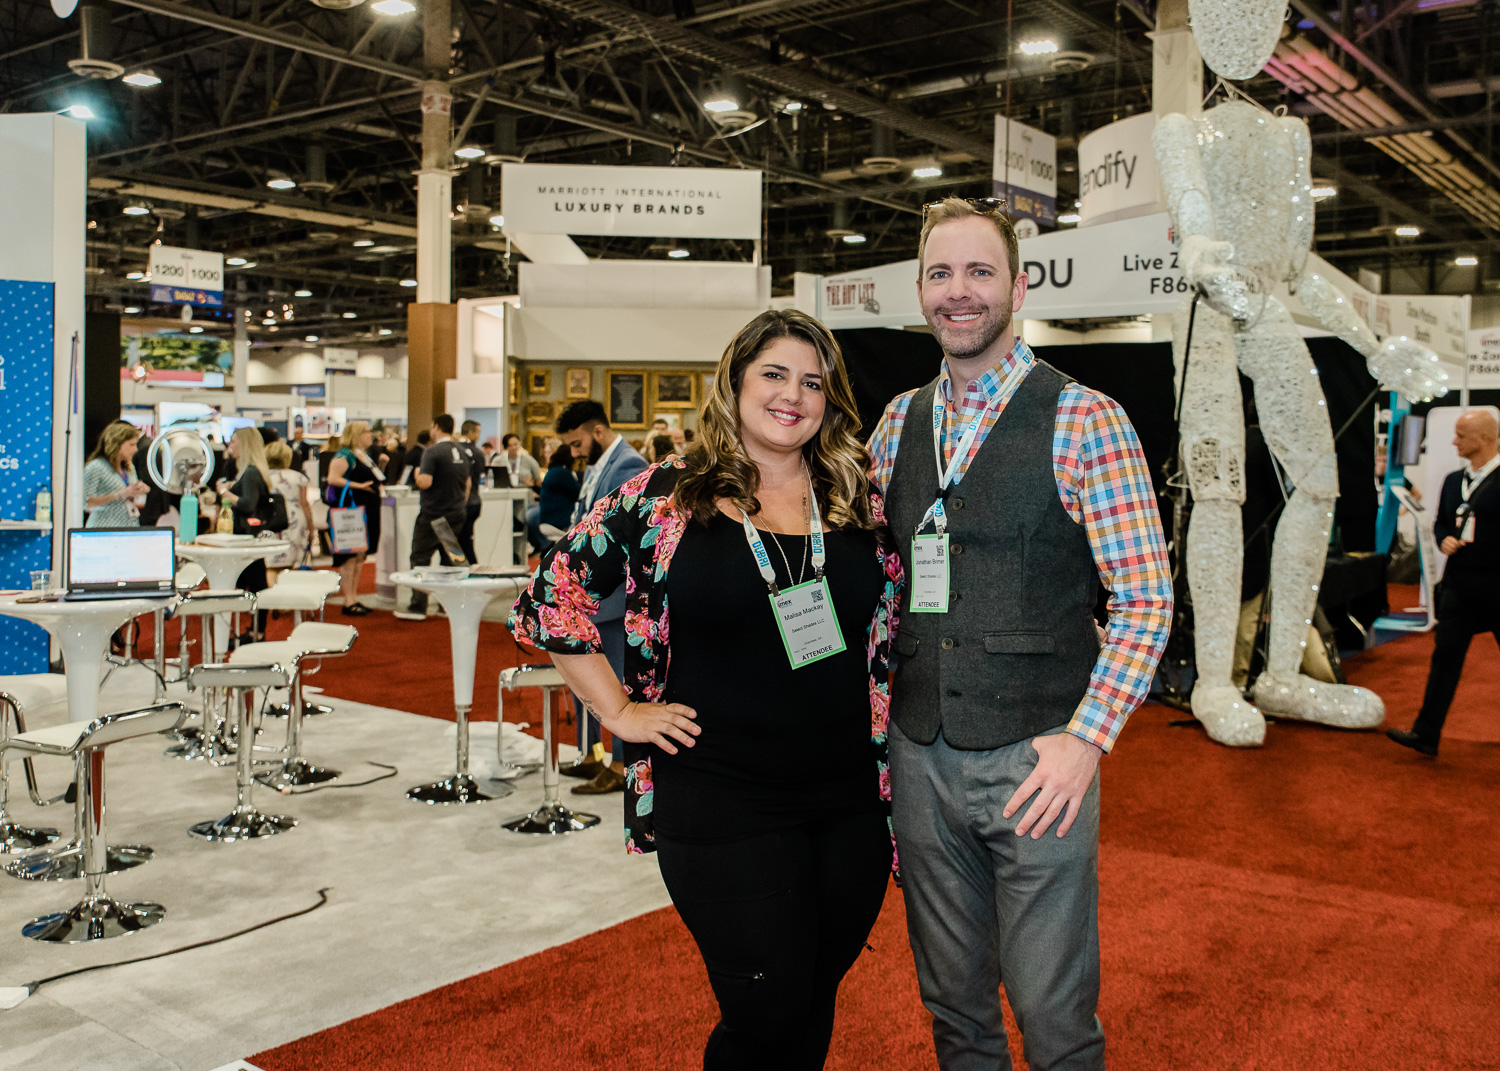 IMEX5_KelliPricePhotography_LasVegasNV_October2018.jpg